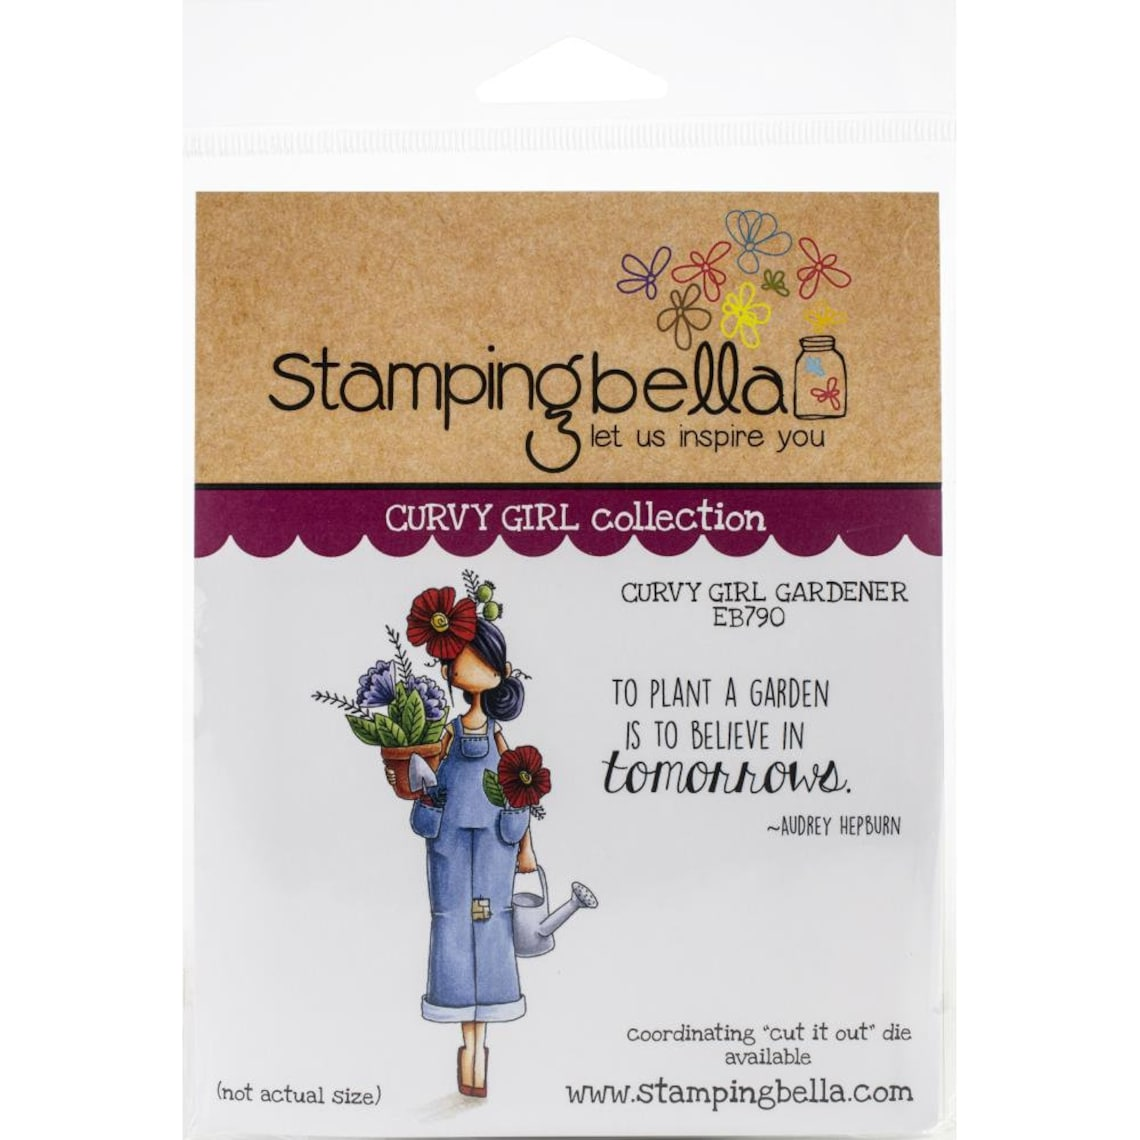 CURVY GIRL GARDENER   Set by STAMPiNG BeLLA   All New   2 image 0